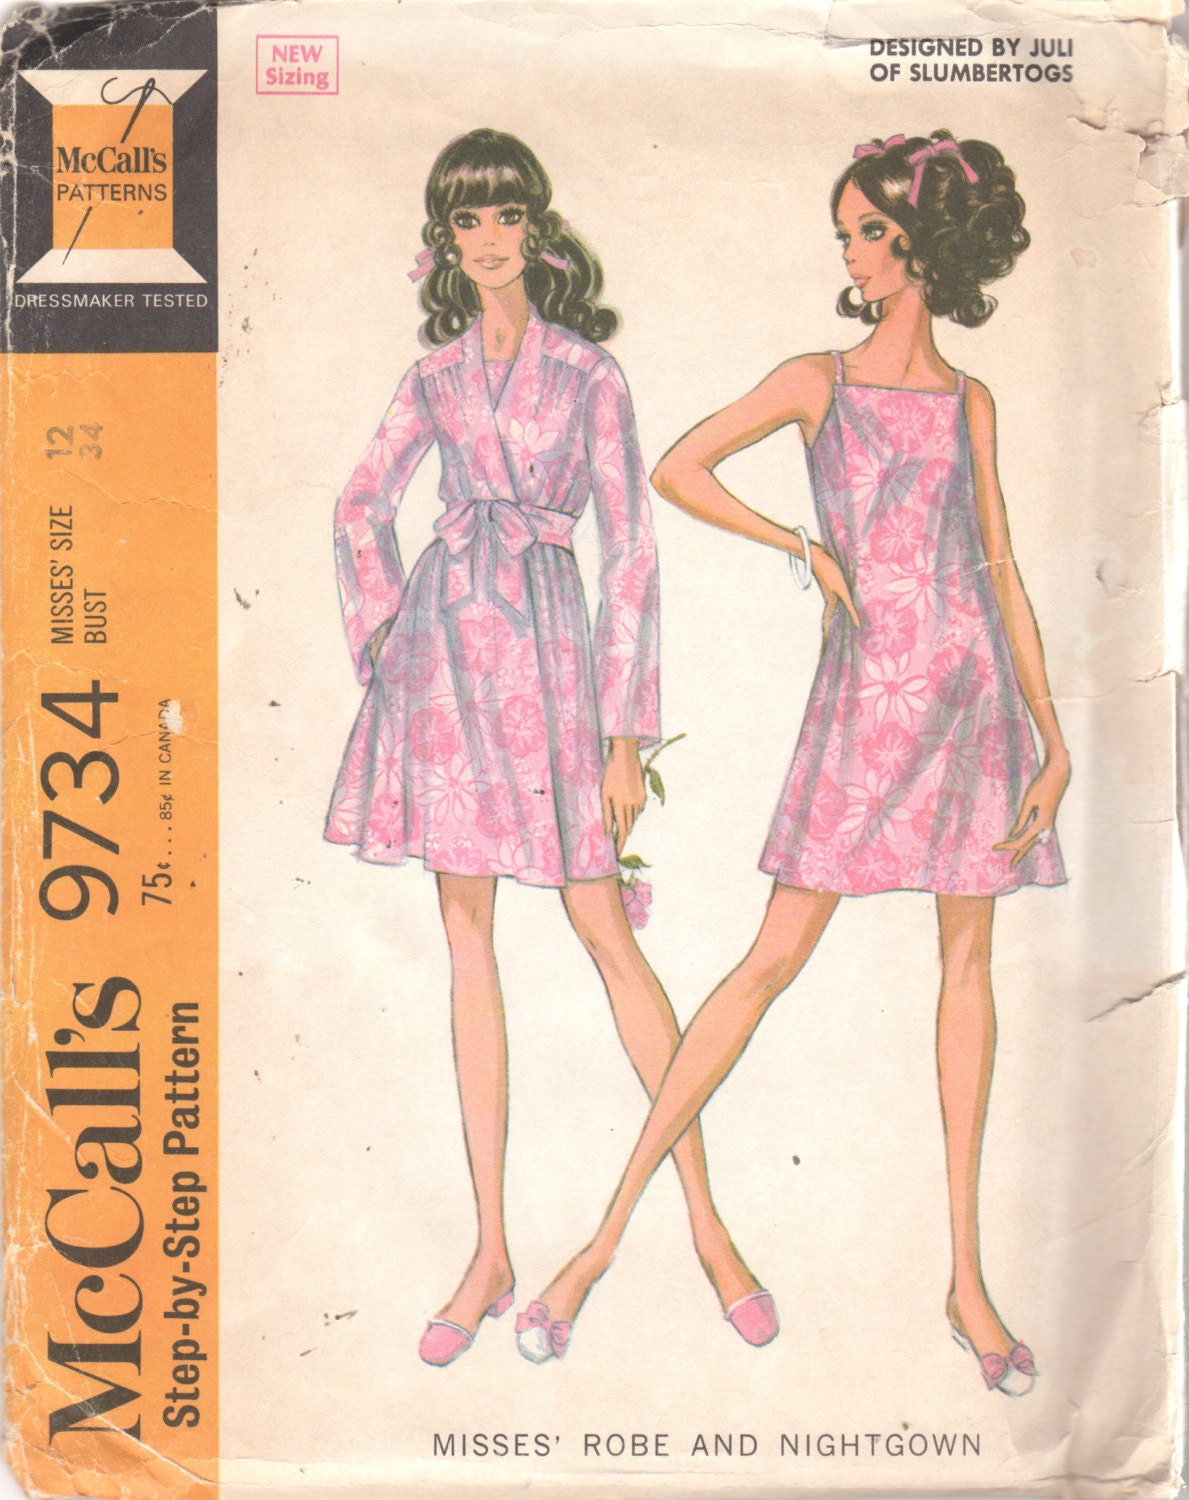 Nightgown Patterns Cool Design Inspiration